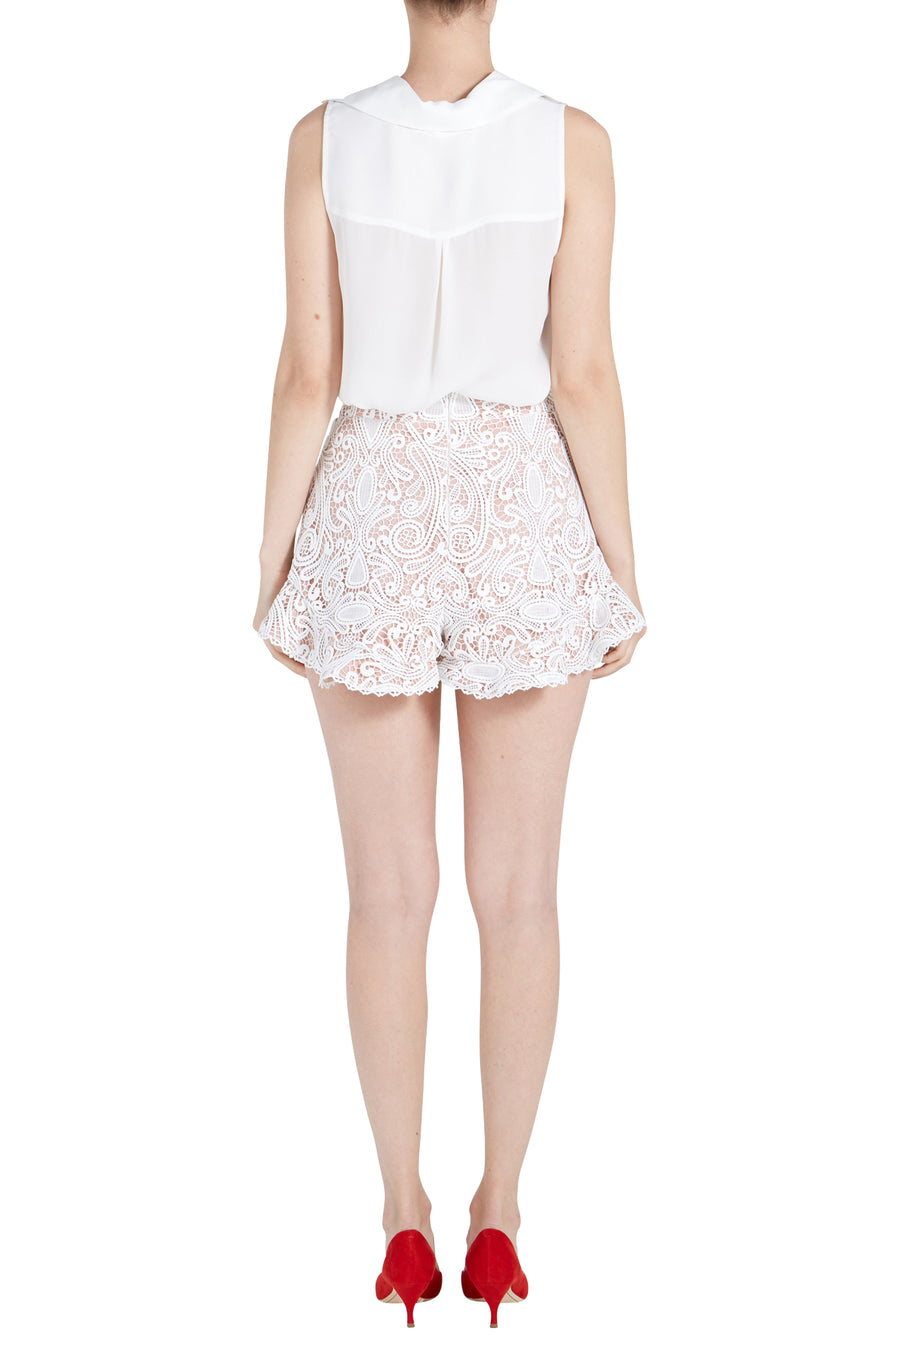 BARRON LACE SHORT